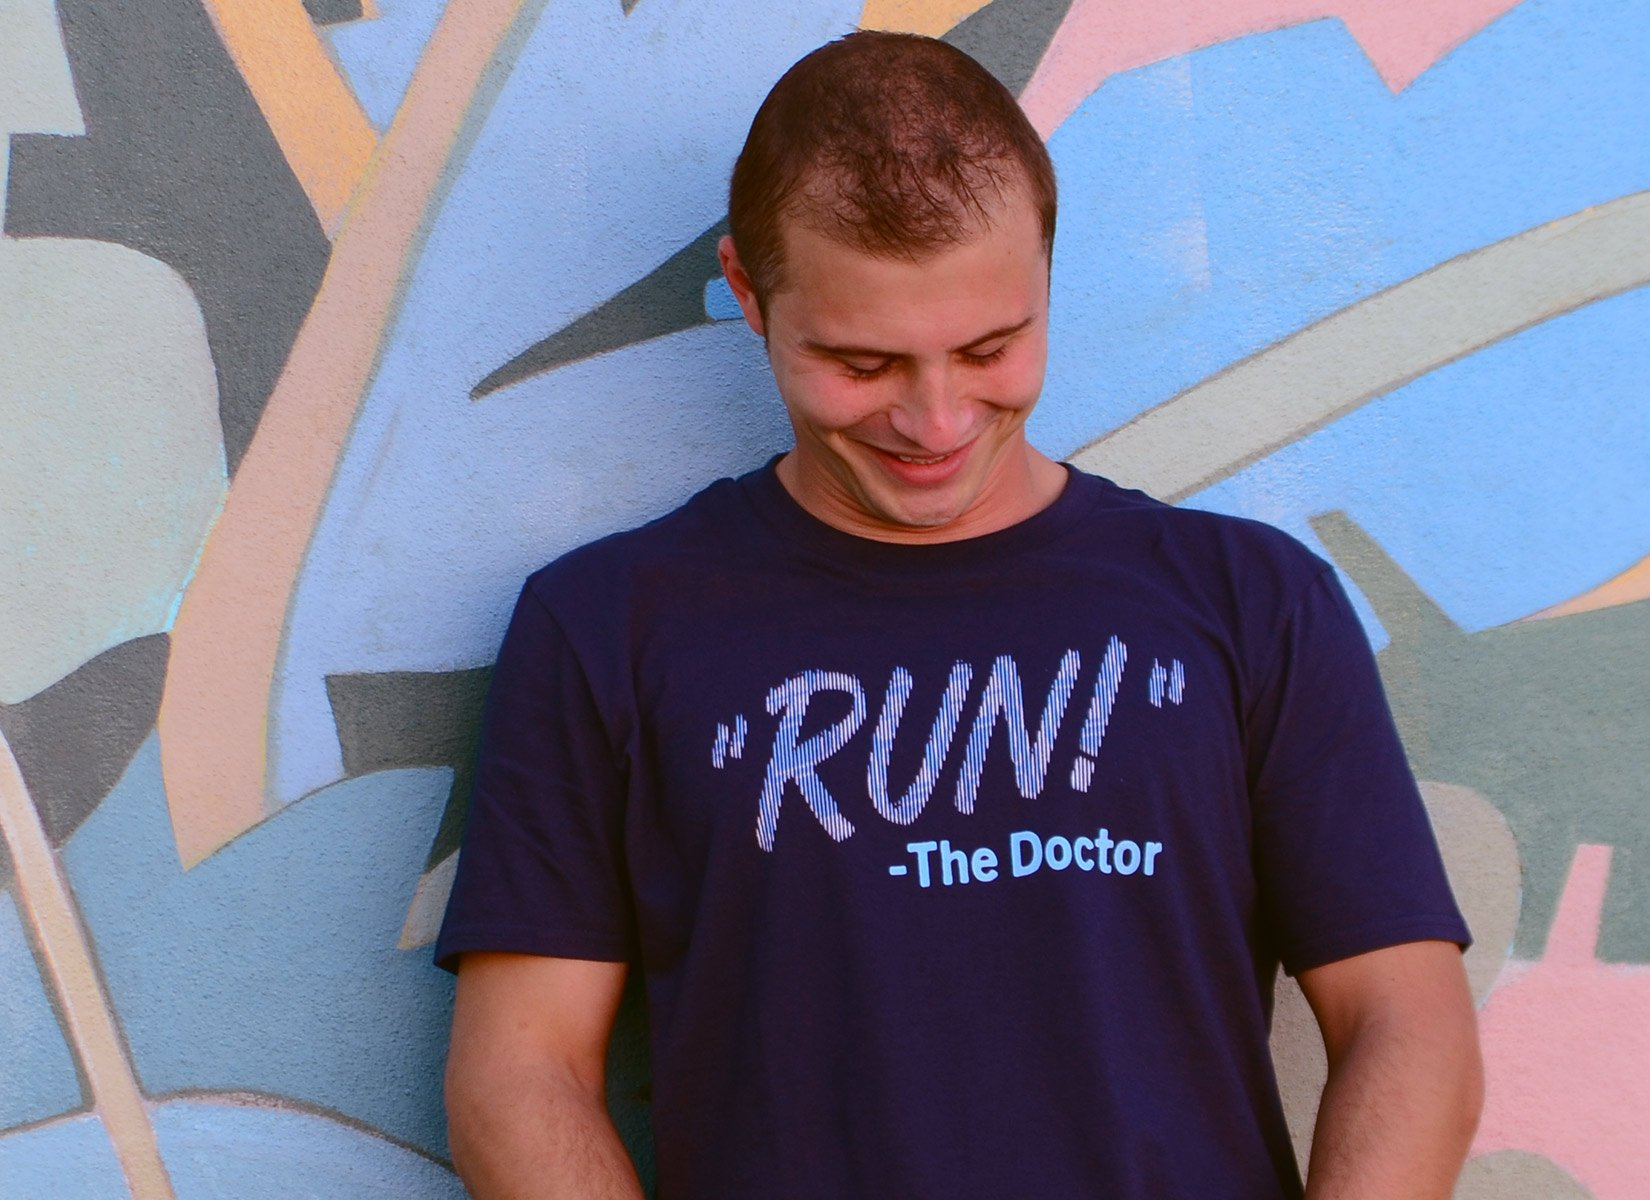 RUN! The Doctor on Mens T-Shirt